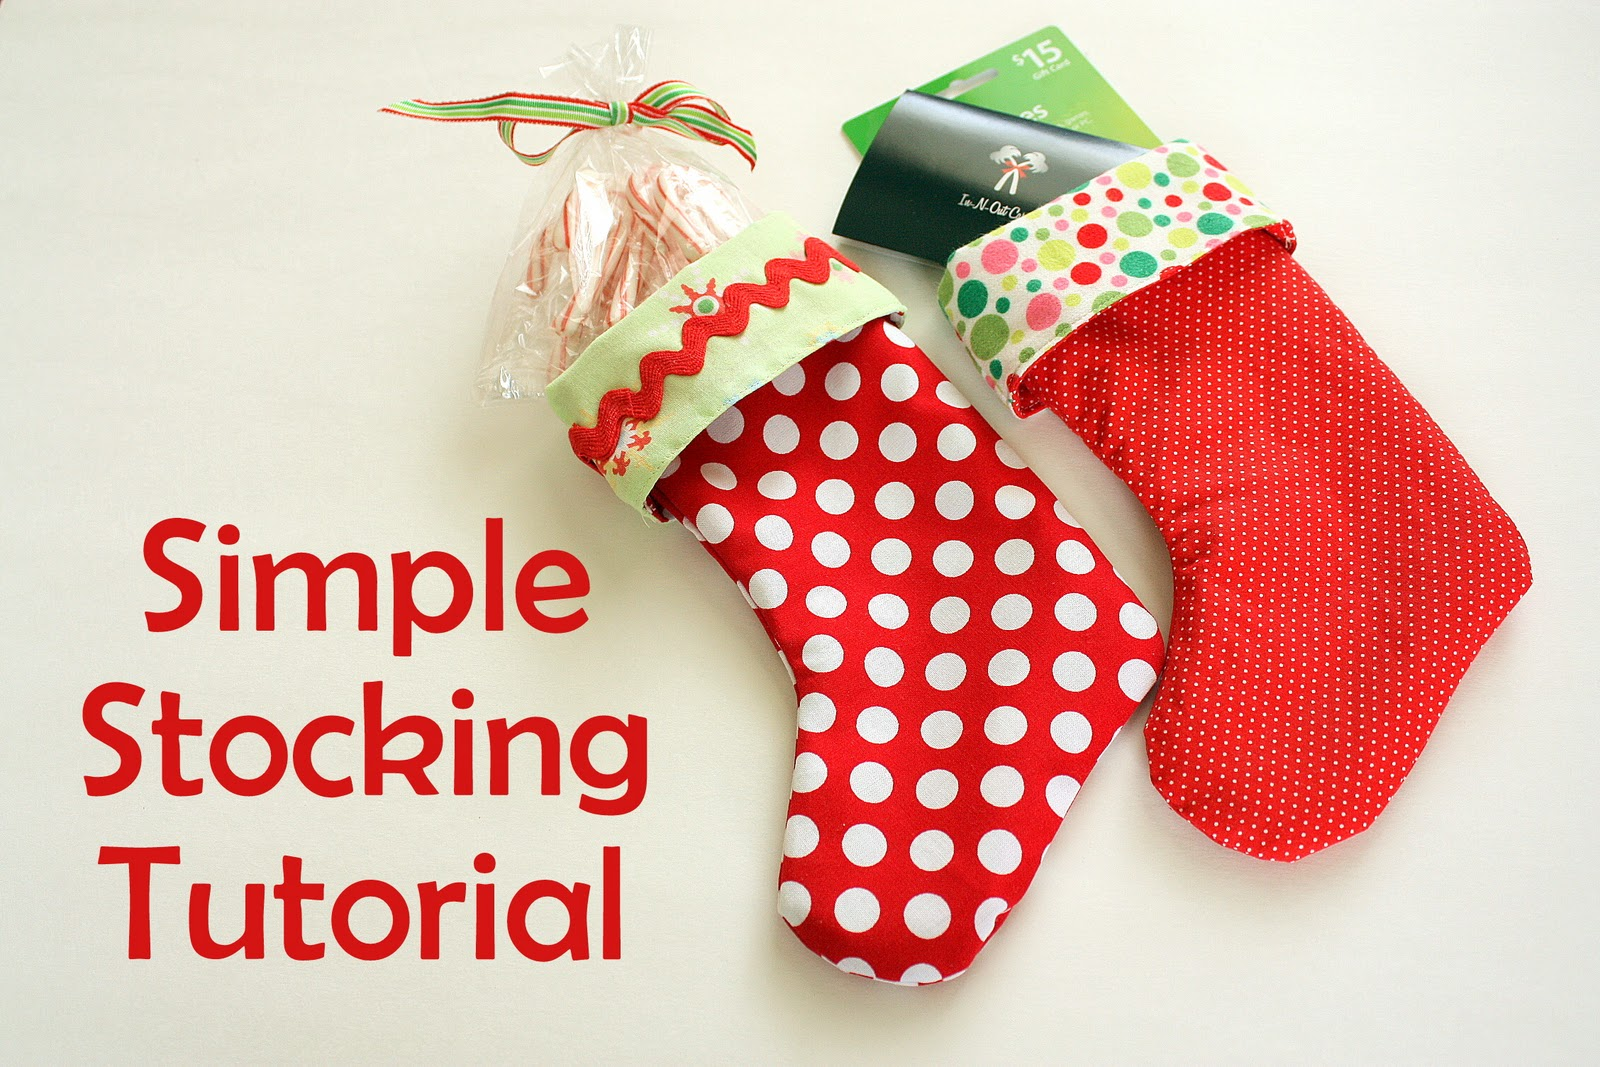 Assemble the Body of the Christmas Stocking Mollie Johanson. Place the stocking right sides together, aligning all the edges and pin in place. Sew around the edges, leaving the top of the stocking open. If you are using a fabric other than fleece, apply a seam finish to prevent fraying. Turn right side out.